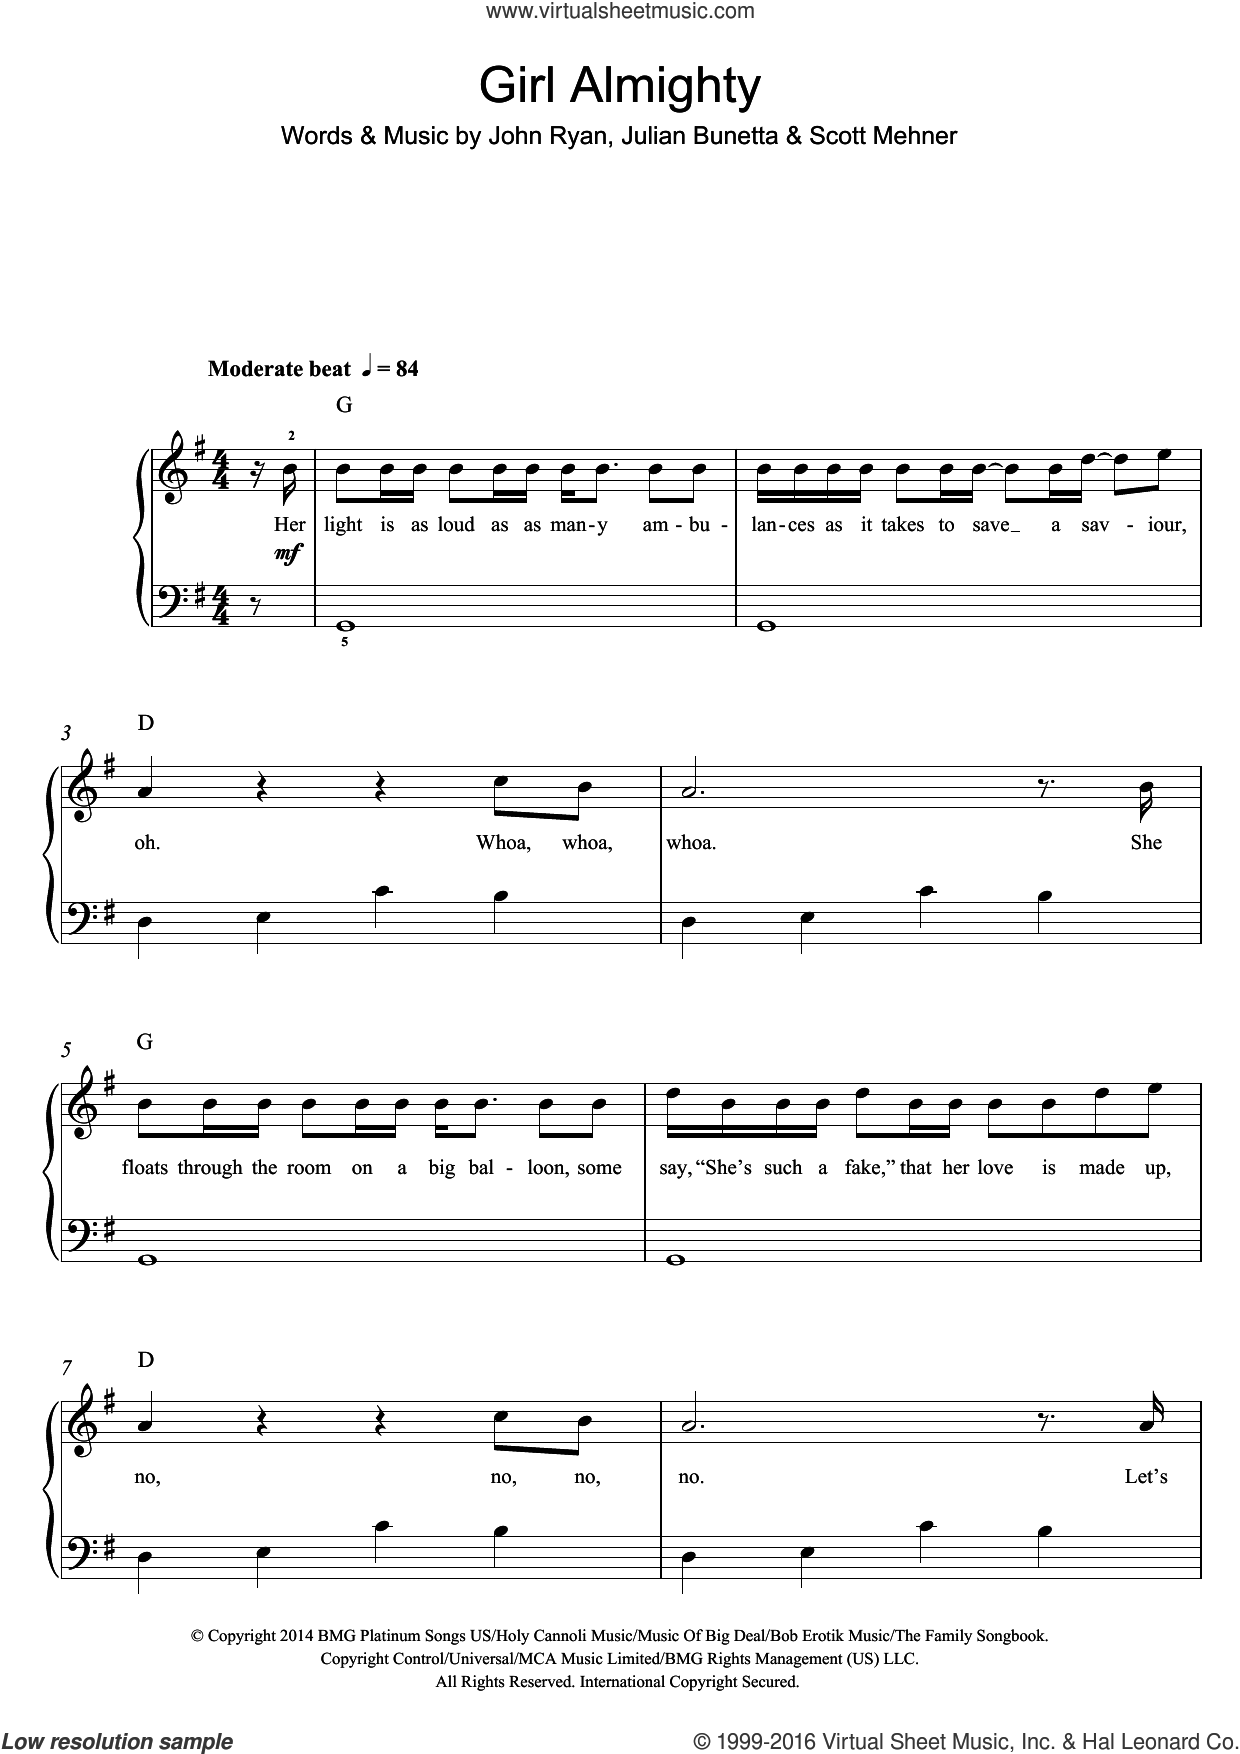 Girl Almighty sheet music for voice, piano or guitar by One Direction, John Ryan, Julian Bunetta and Scott Mehner, intermediate skill level